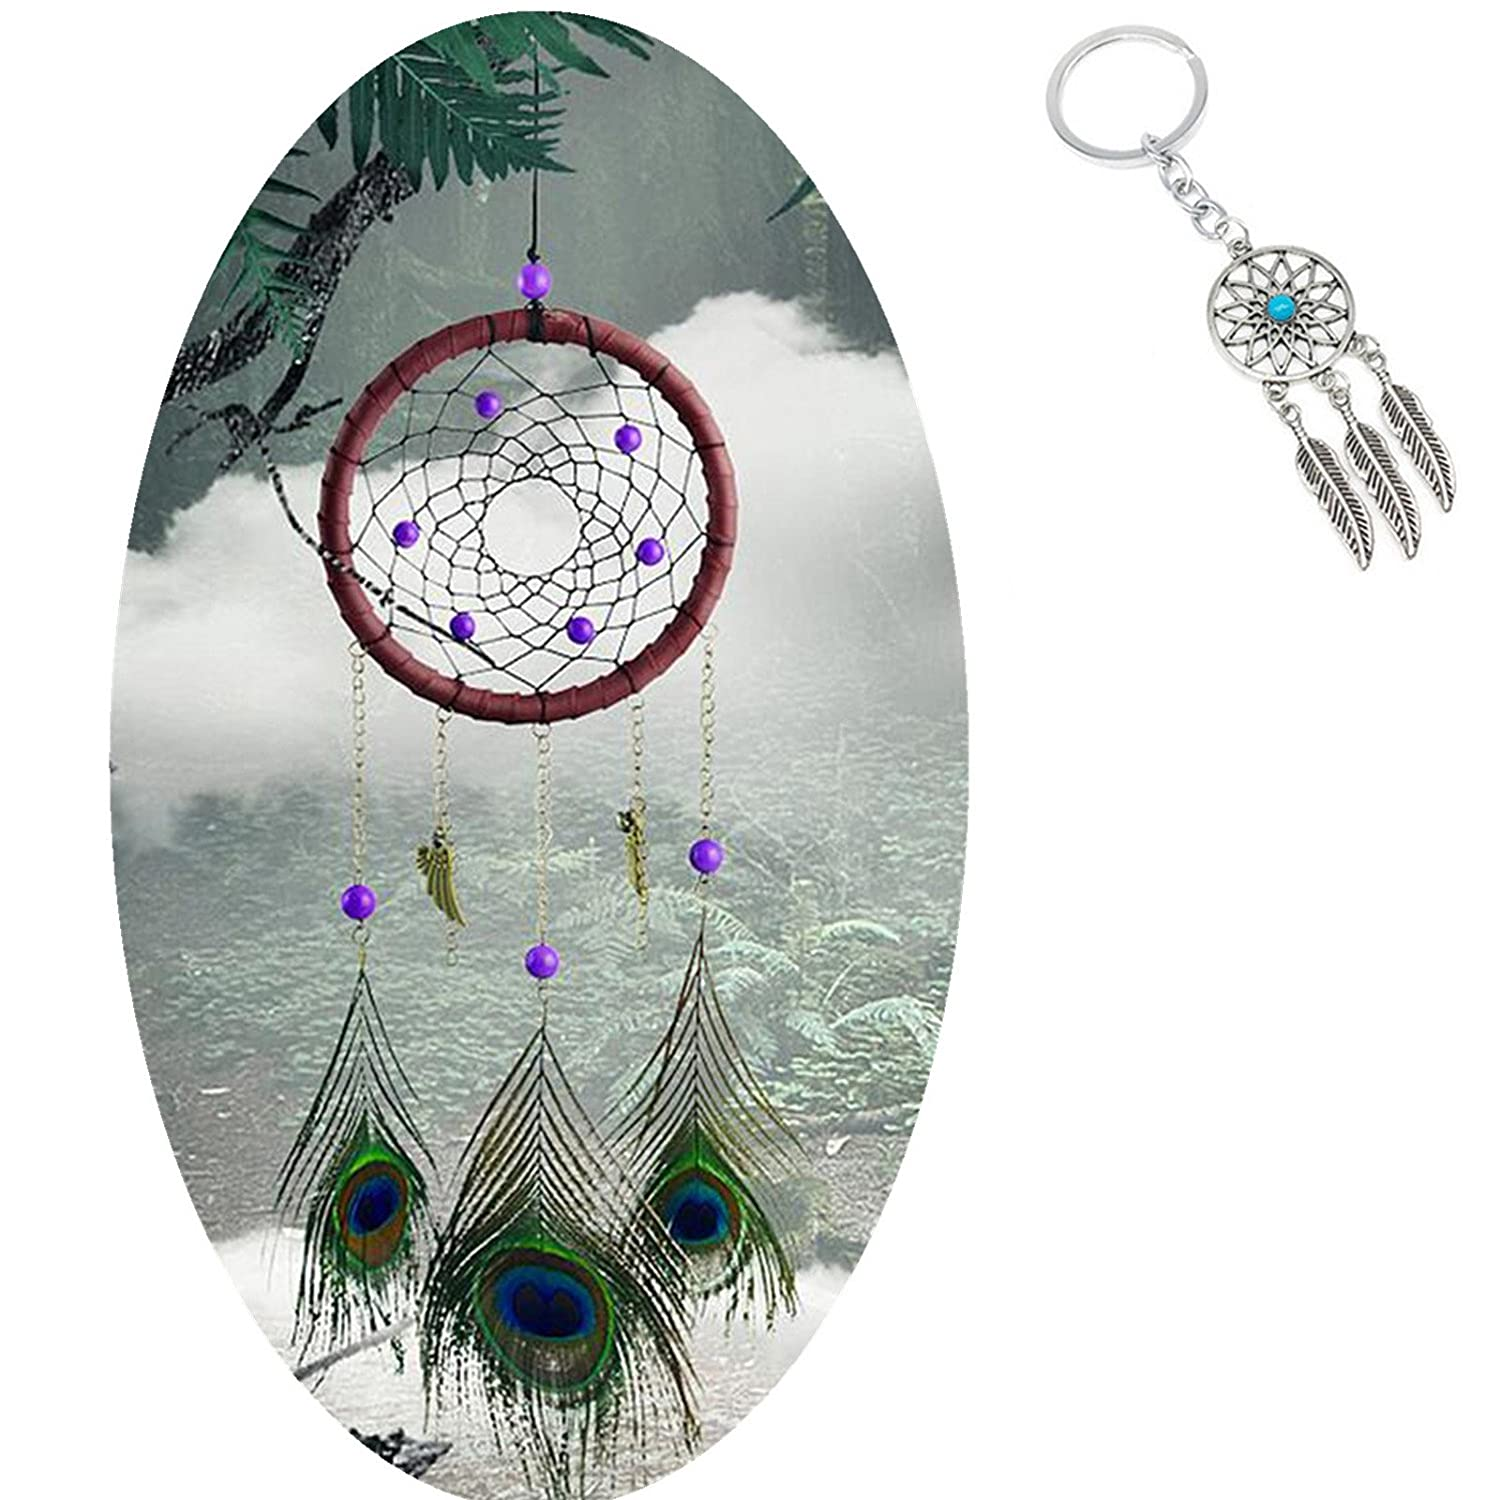 AWAYTR Forest Dreamcatcher Gift Handmade Dream Catcher Net with Feathers Wall Hanging Decoration Ornament (Beige)